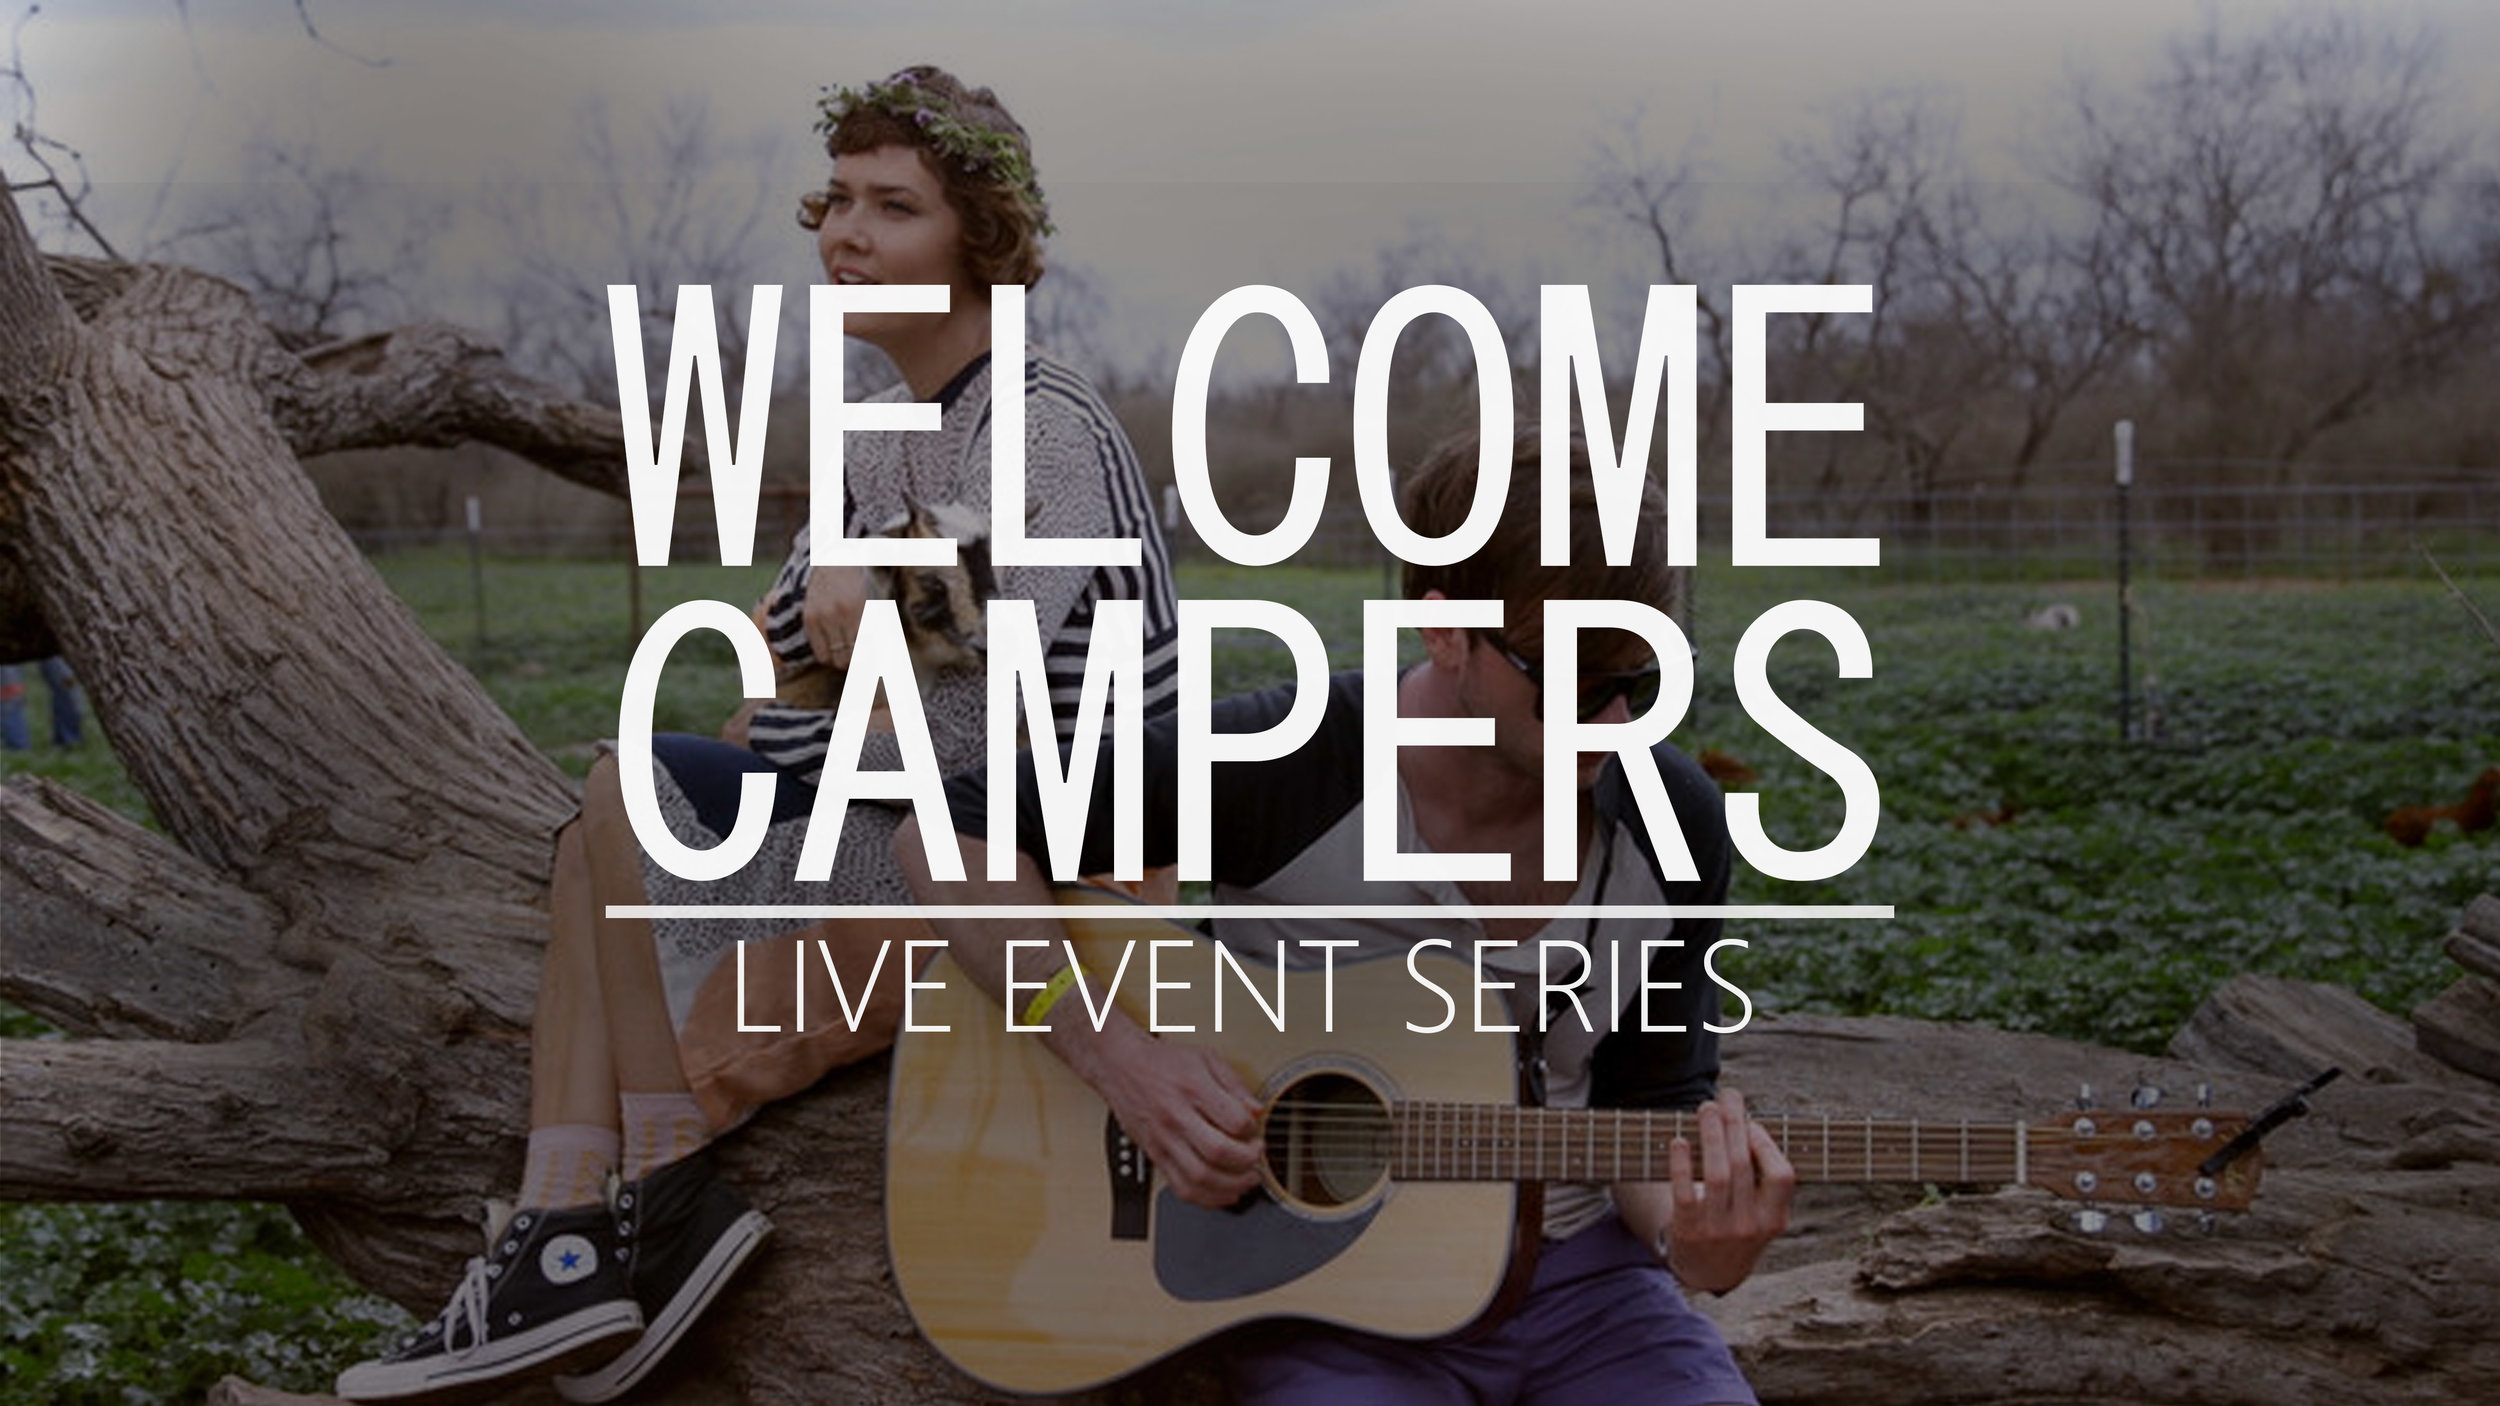 Welcome Campers - Live Event Series